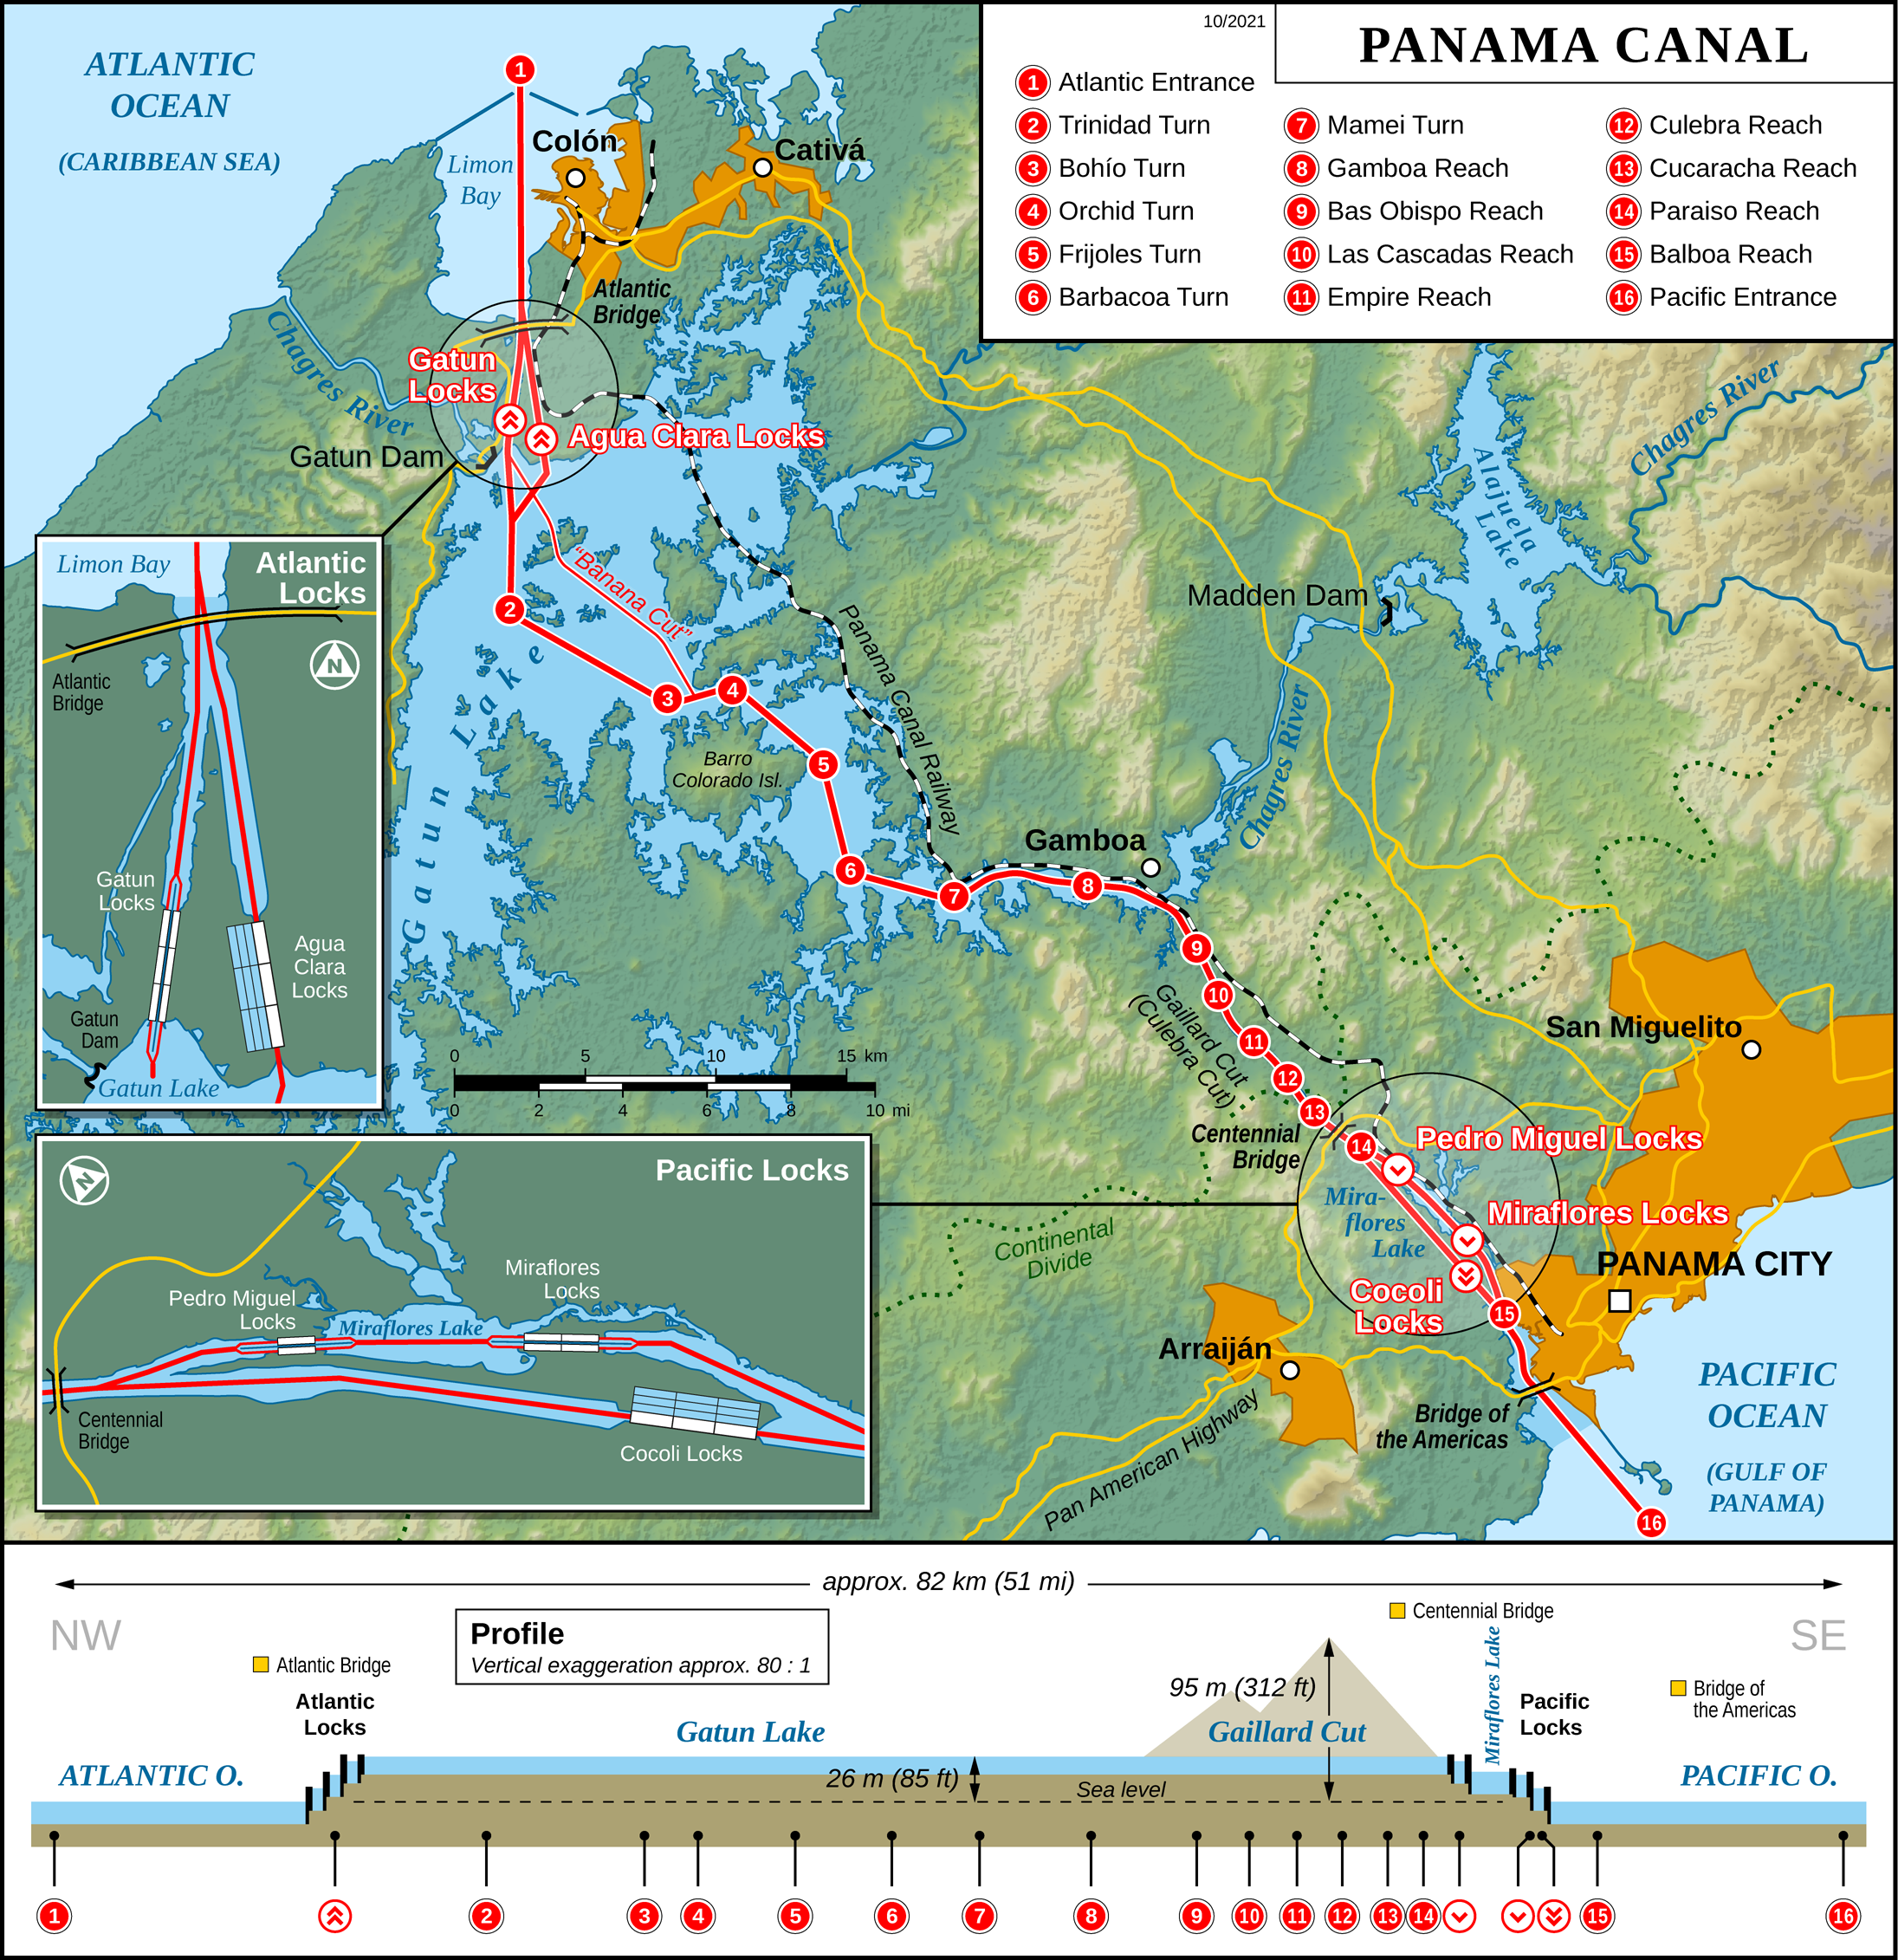 http://upload.wikimedia.org/wikipedia/commons/9/91/Panama_Canal_Map_EN.png